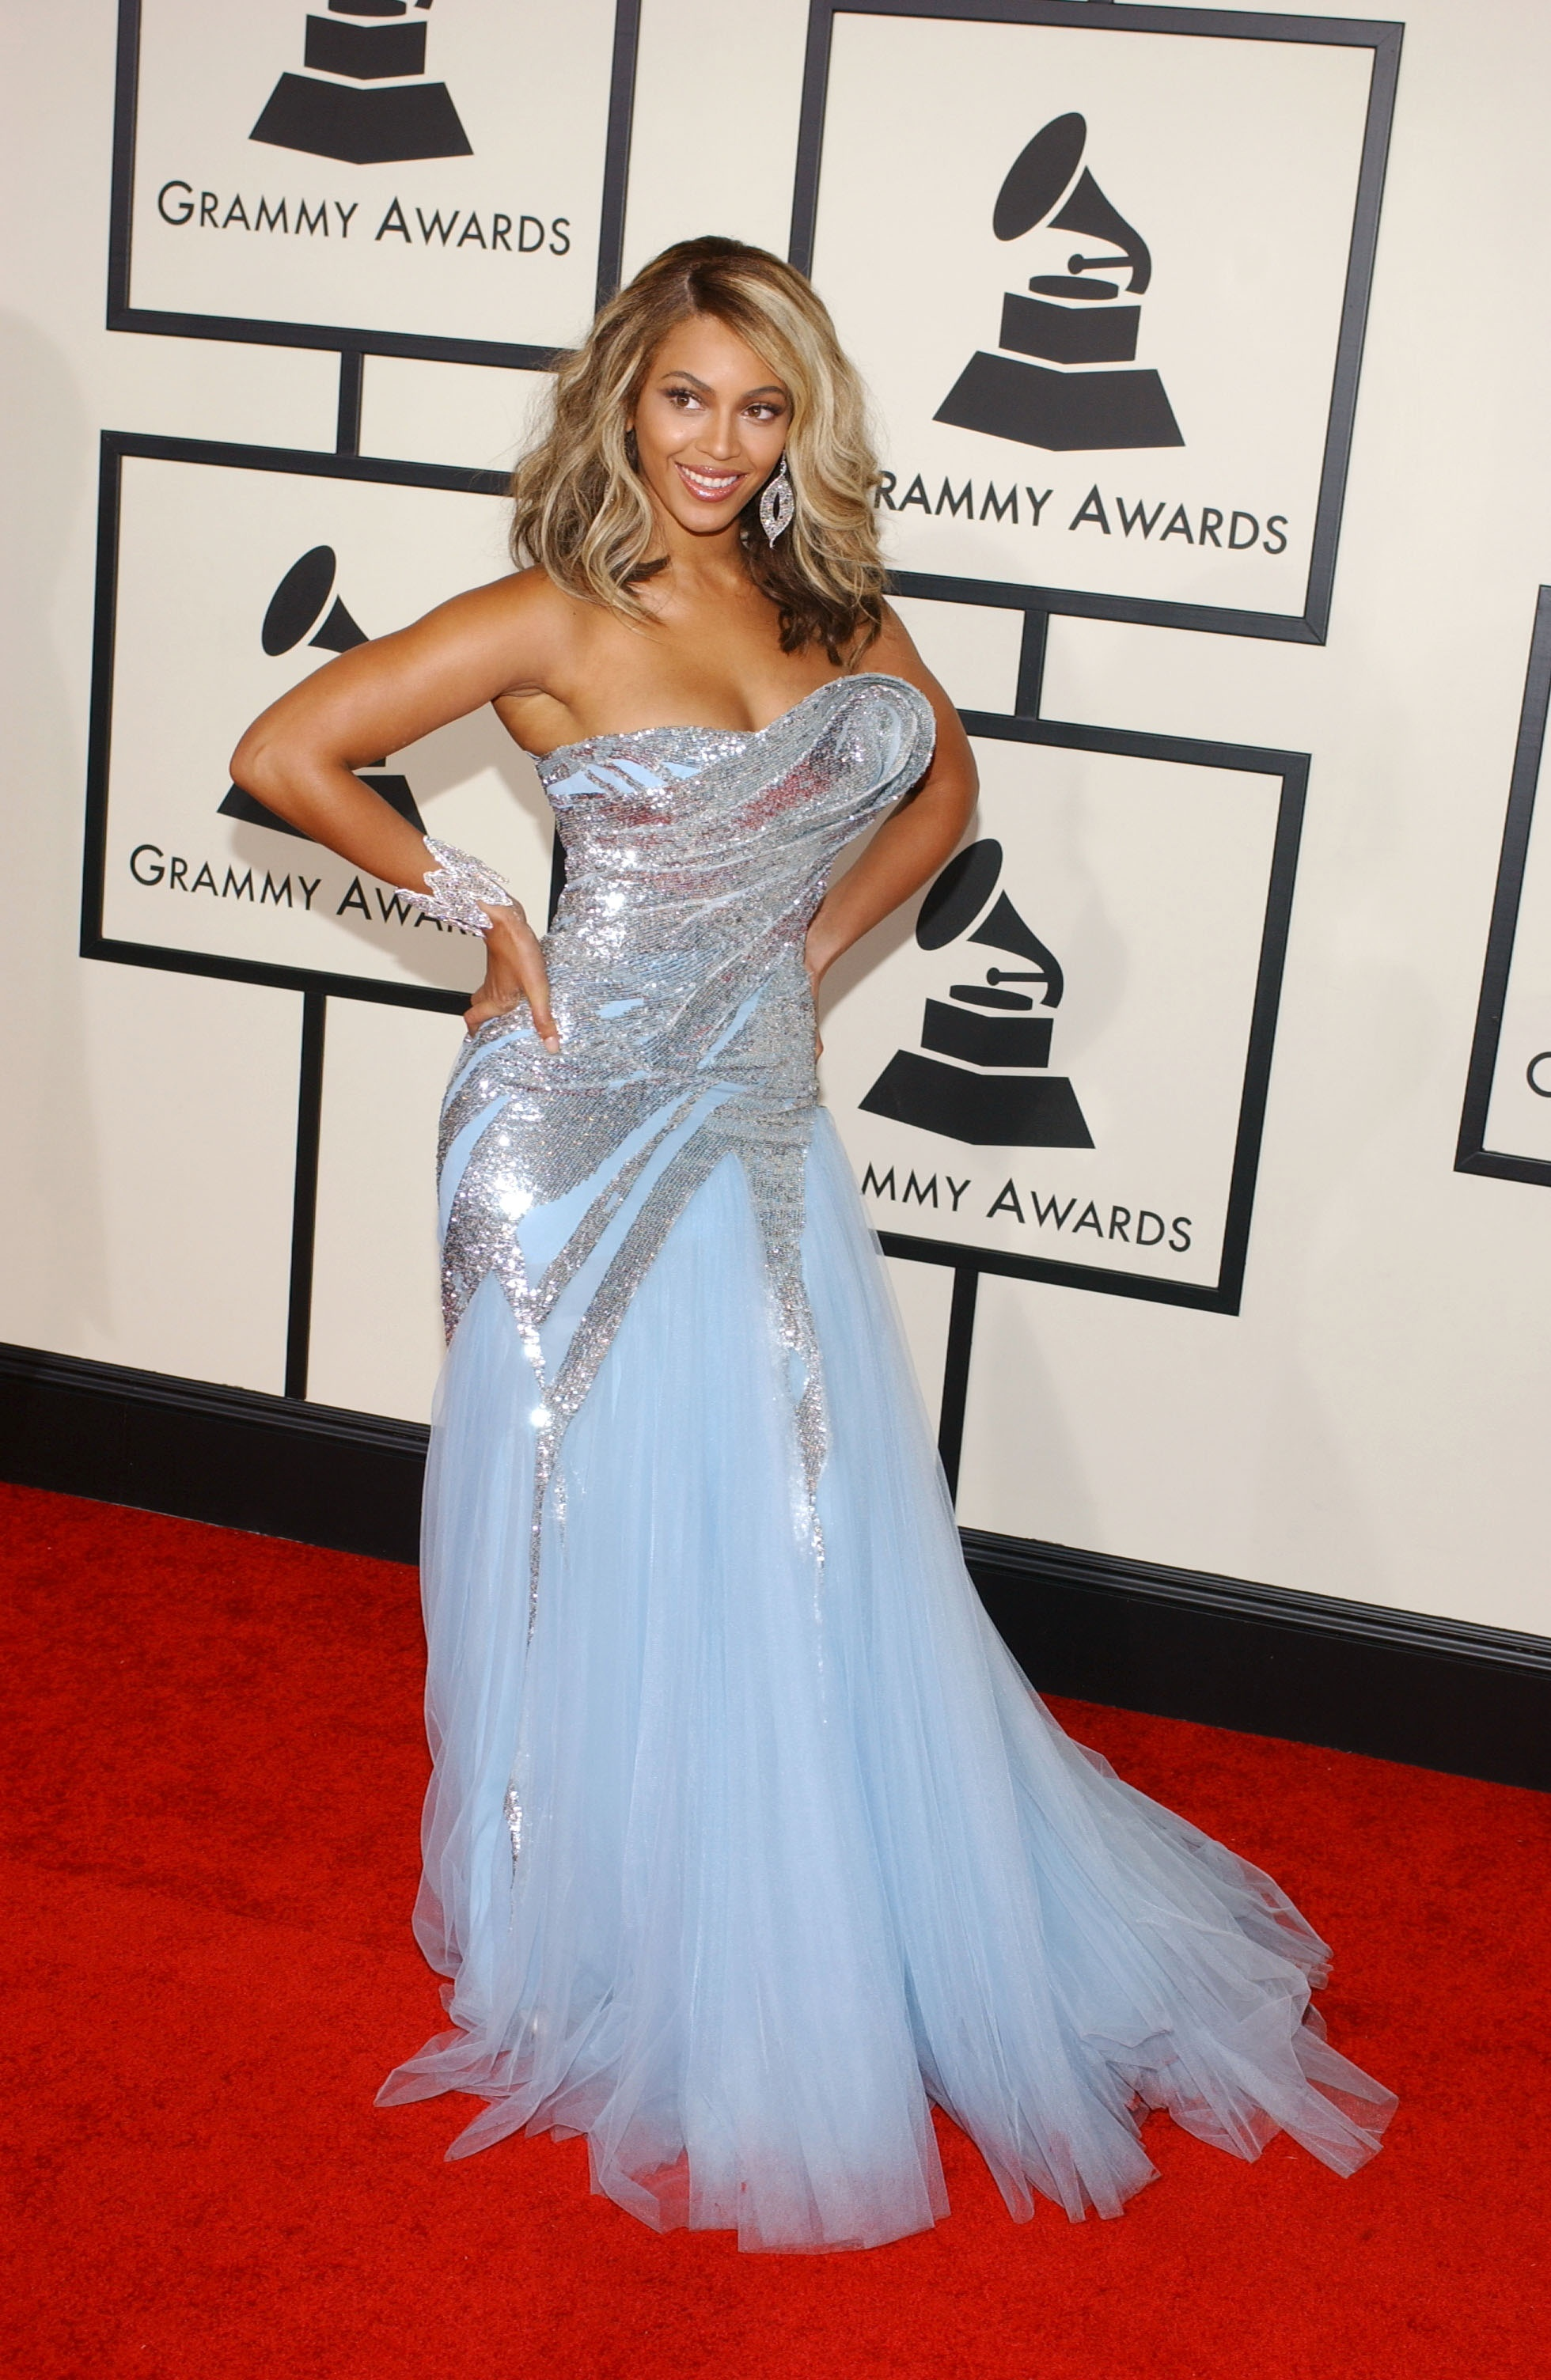 Beyonce Knowles attends the 50th Annual Grammy Awards at Staples Center in Los Angeles on Feb. 10, 2008.